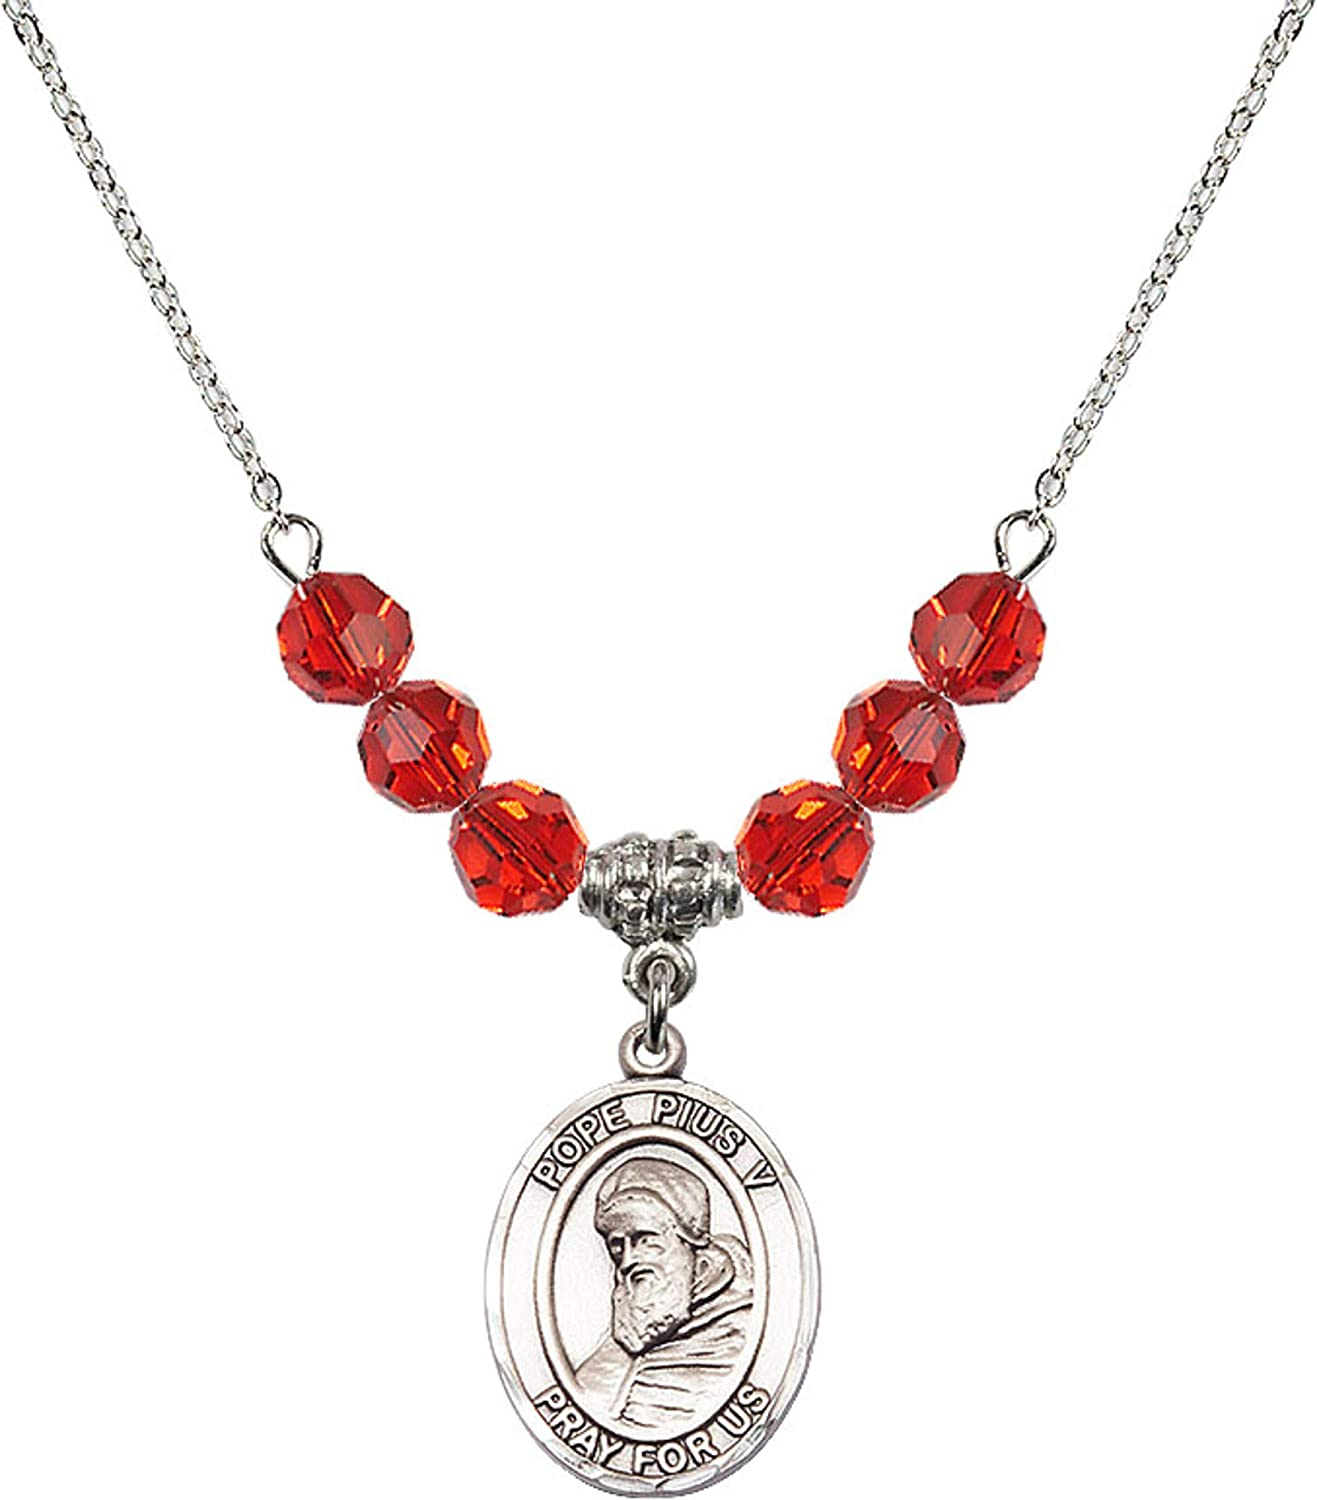 Bonyak Jewelry 18 Inch Rhodium Plated Necklace w// 6mm Red July Birth Month Stone Beads and Saint Pius V Charm